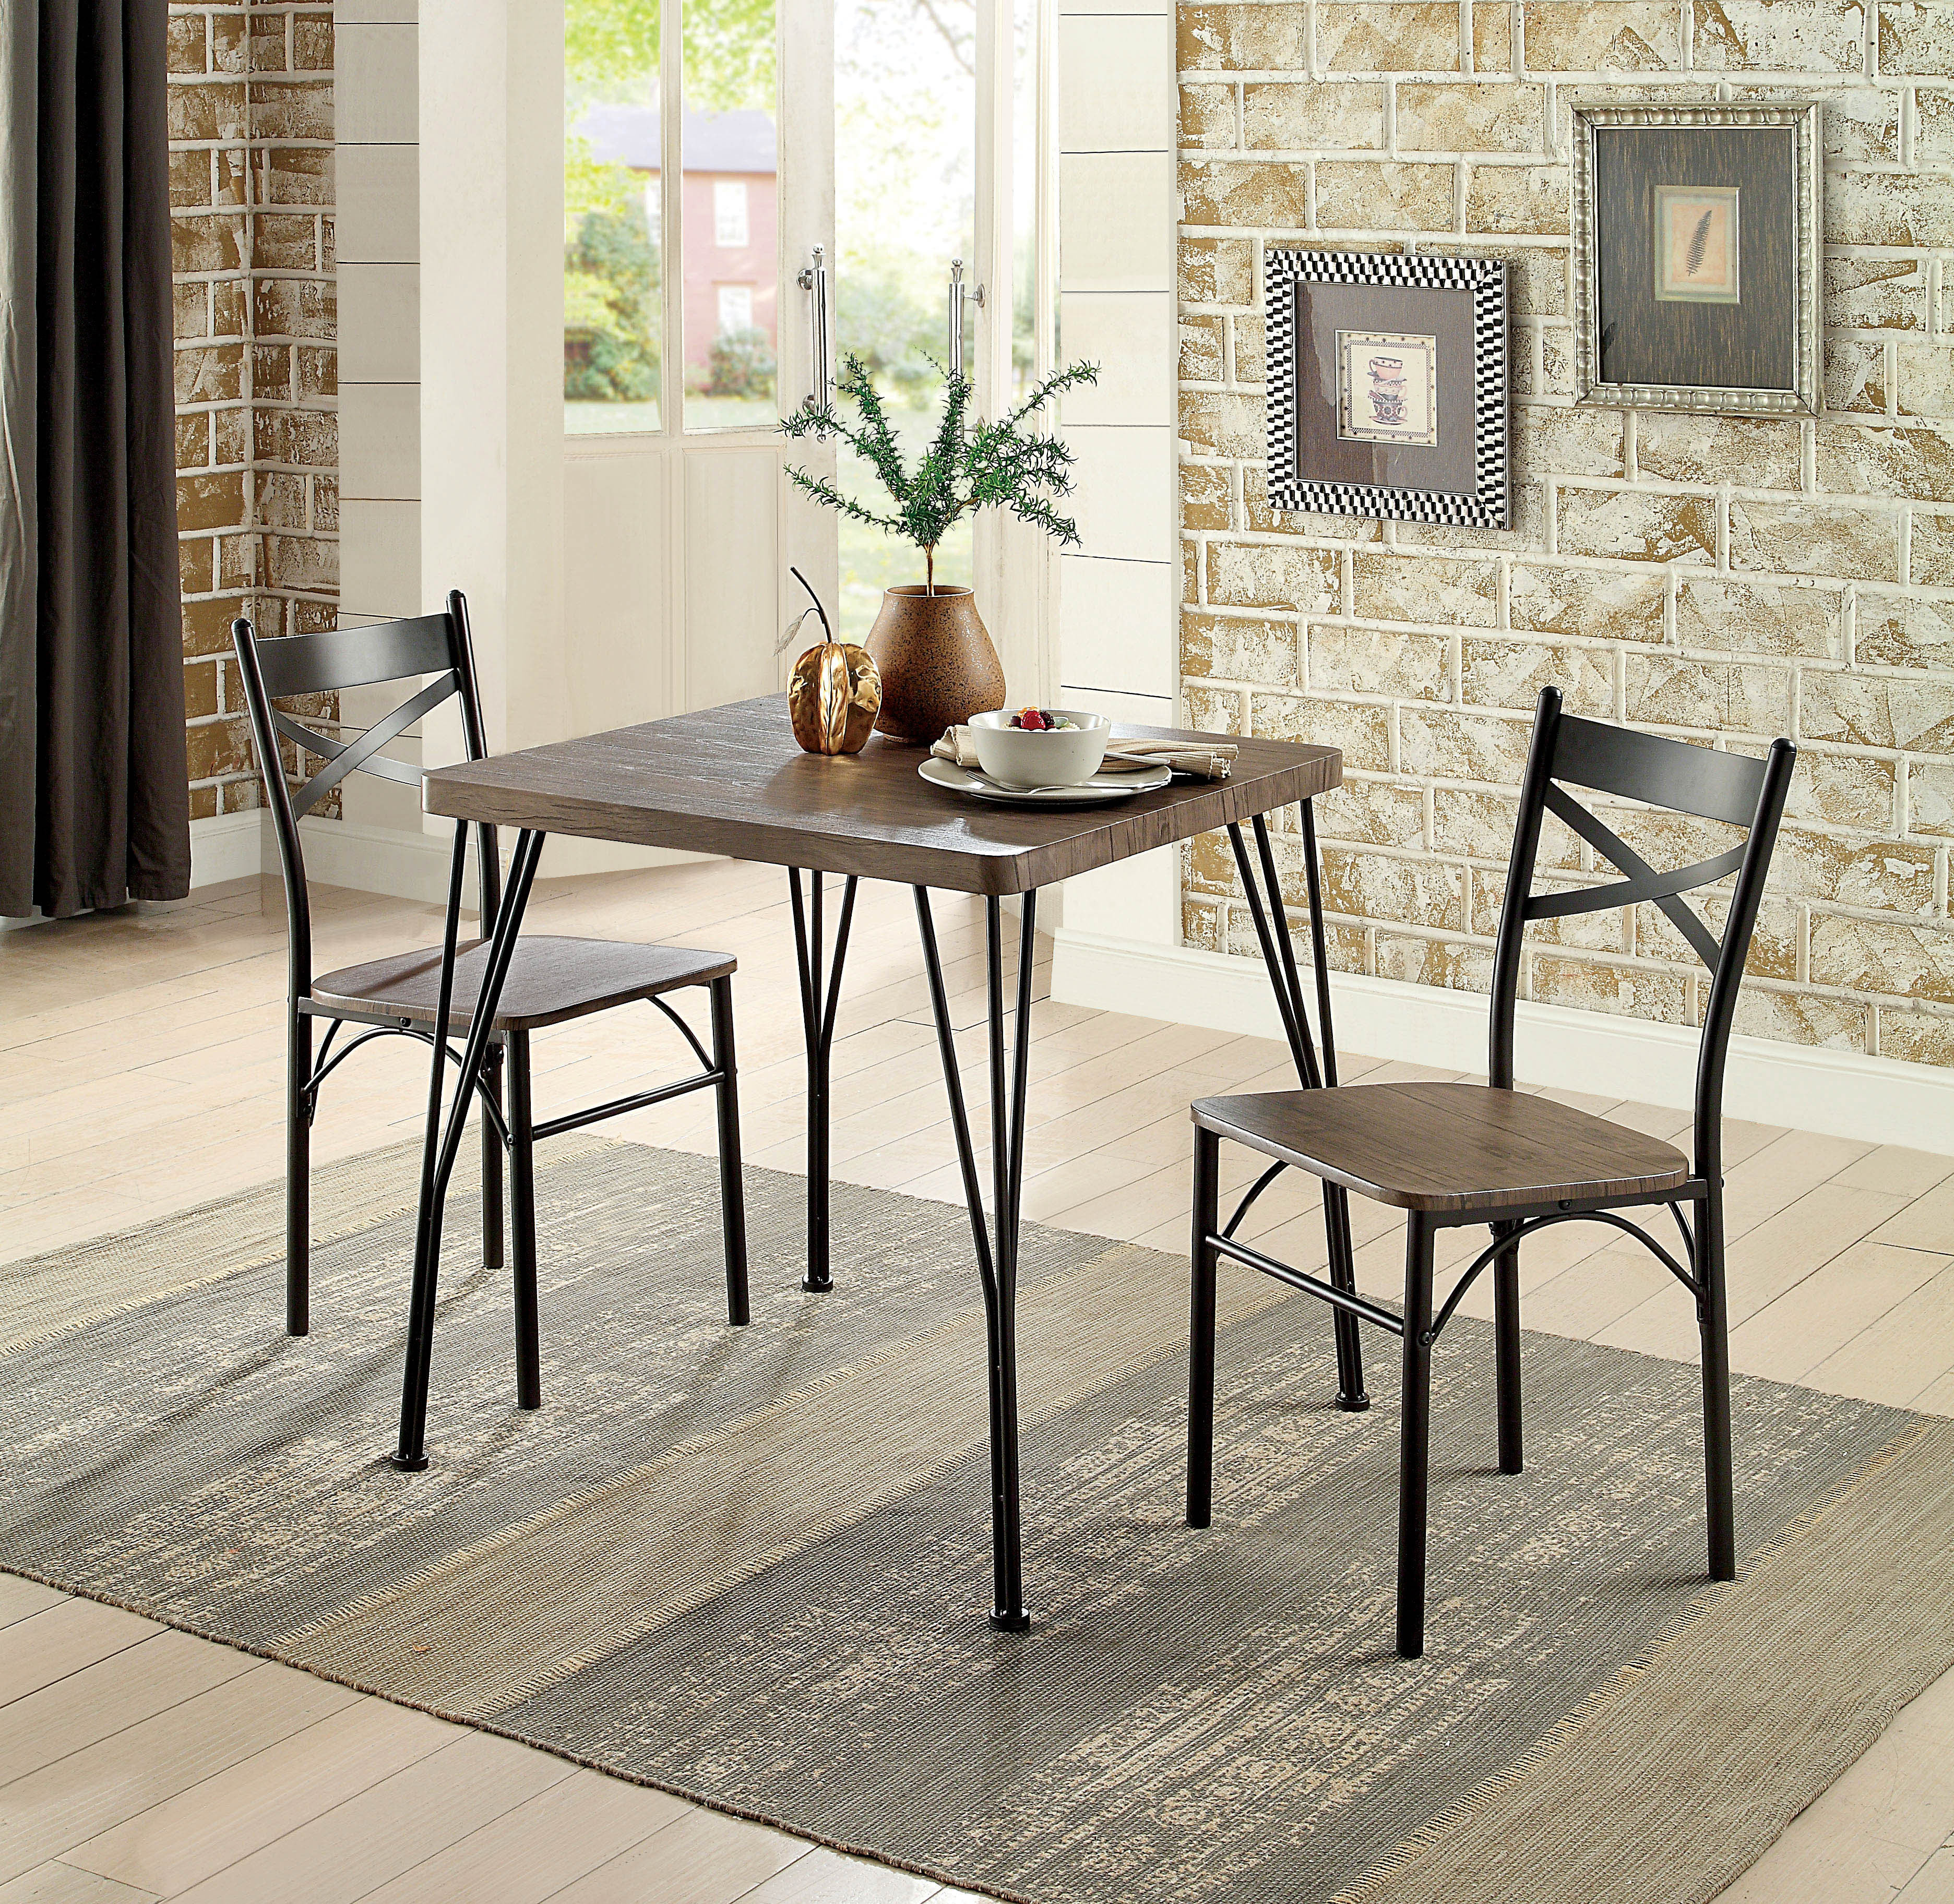 Laurel Foundry Modern Farmhouse Guertin 3 Piece Dining Set & Reviews With Regard To Latest Middleport 5 Piece Dining Sets (Photo 13 of 20)